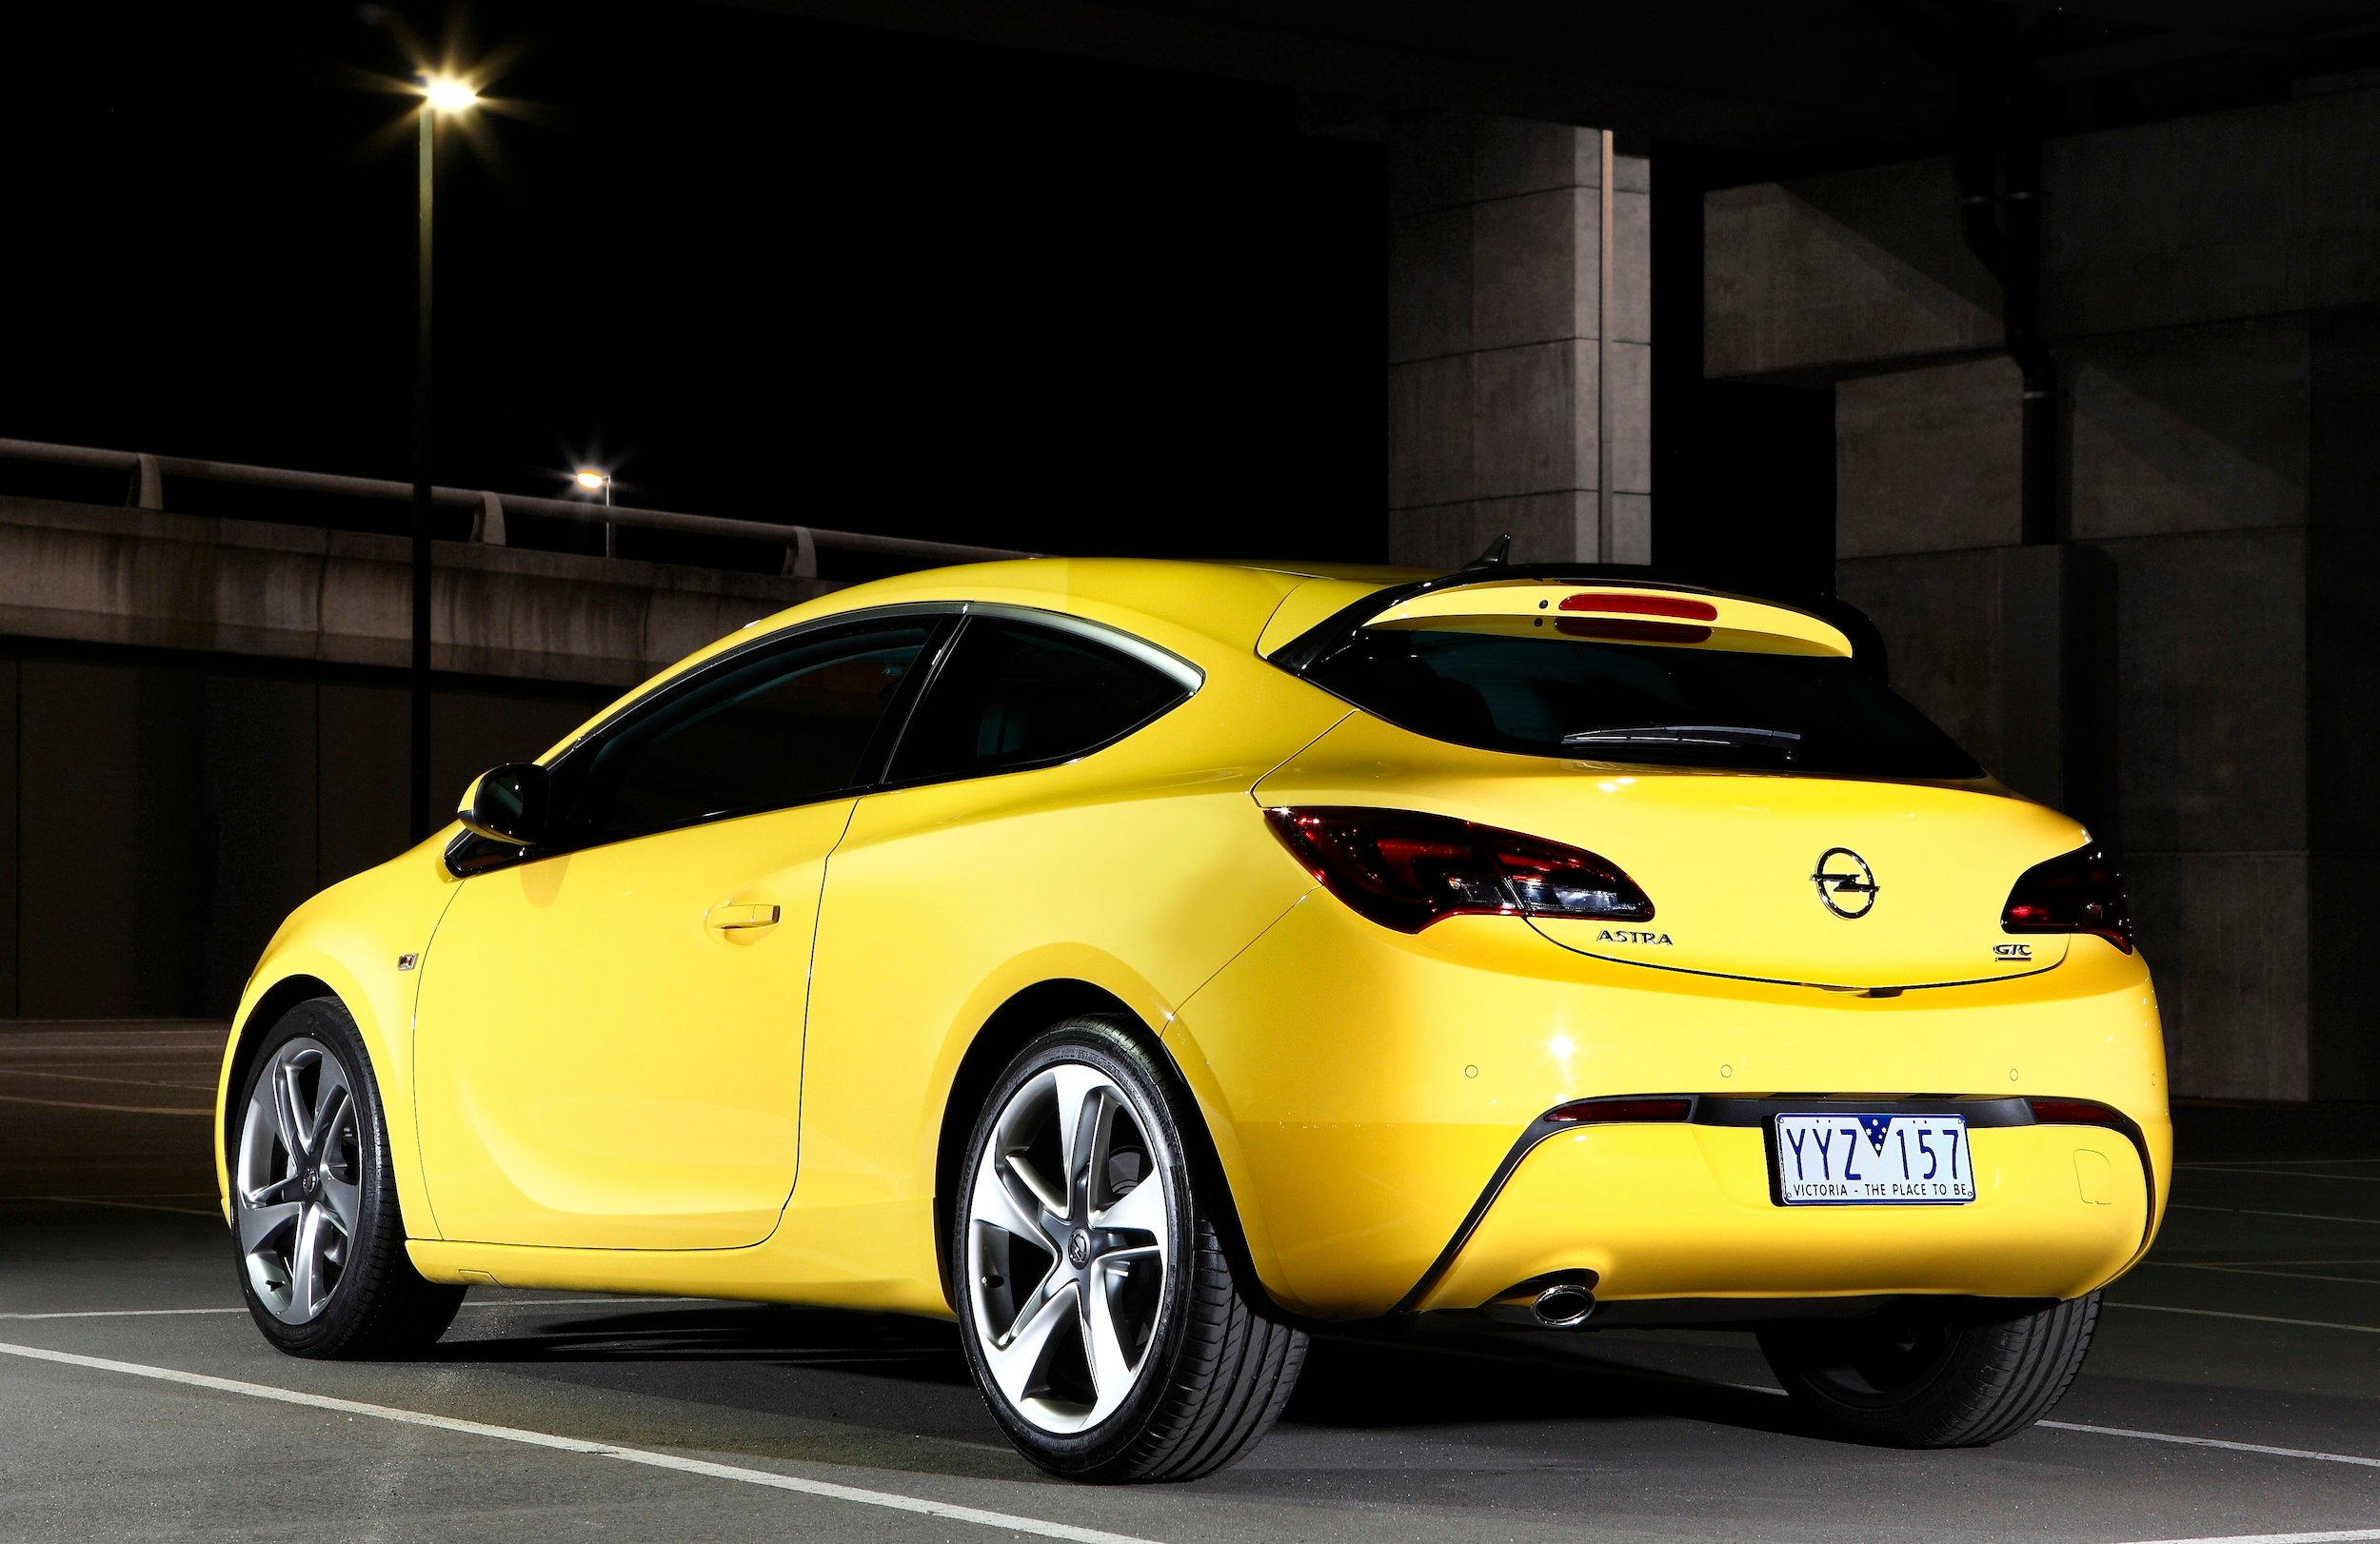 opel astra gtc pricing and specifications revealed. Black Bedroom Furniture Sets. Home Design Ideas